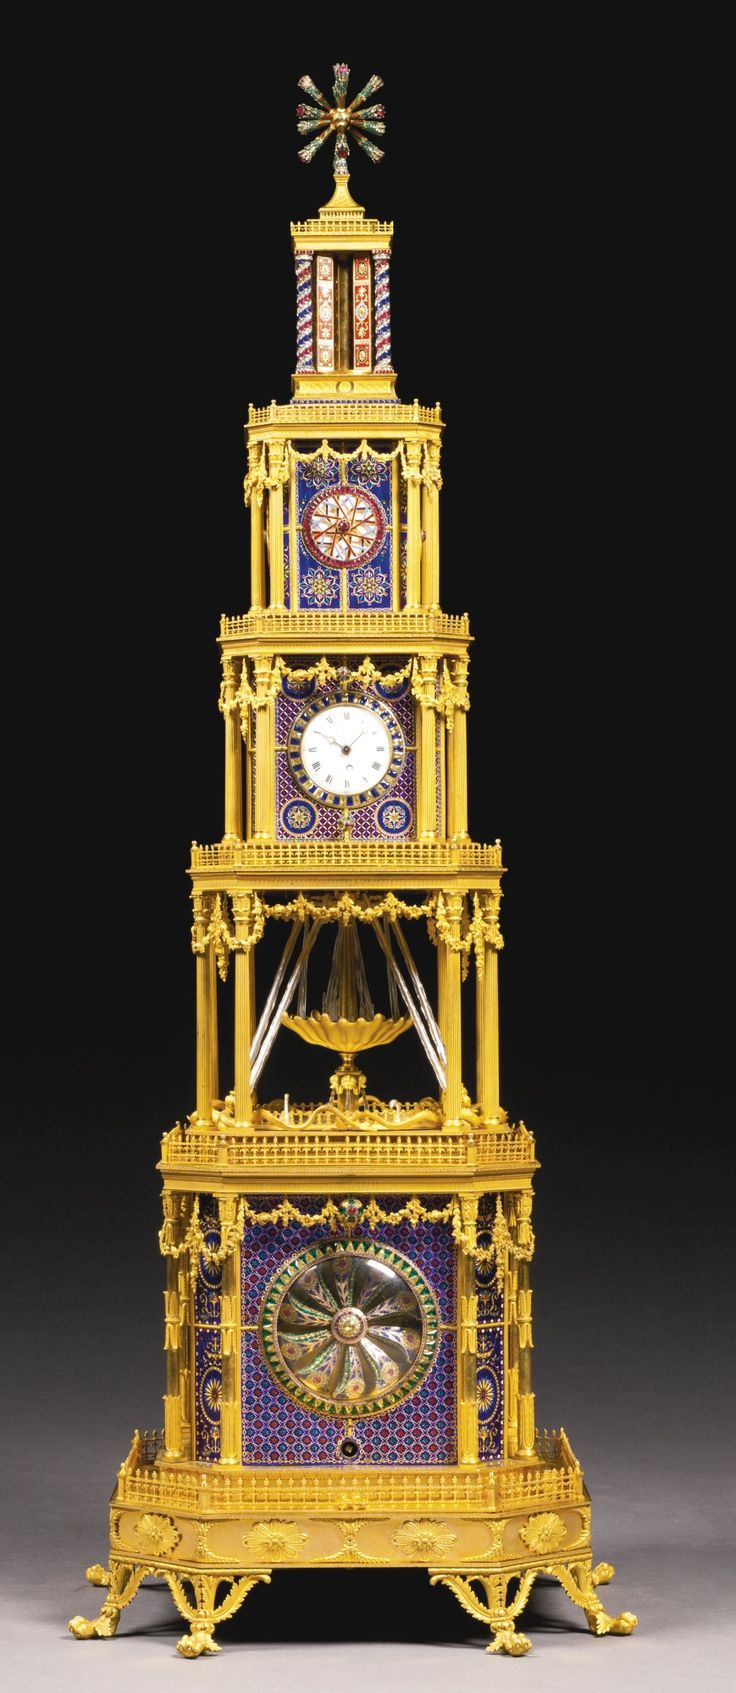 A George III ormolu, enamel, and paste-set musical automation quarter striking tower clock for the Chinese market – London, c.1790.